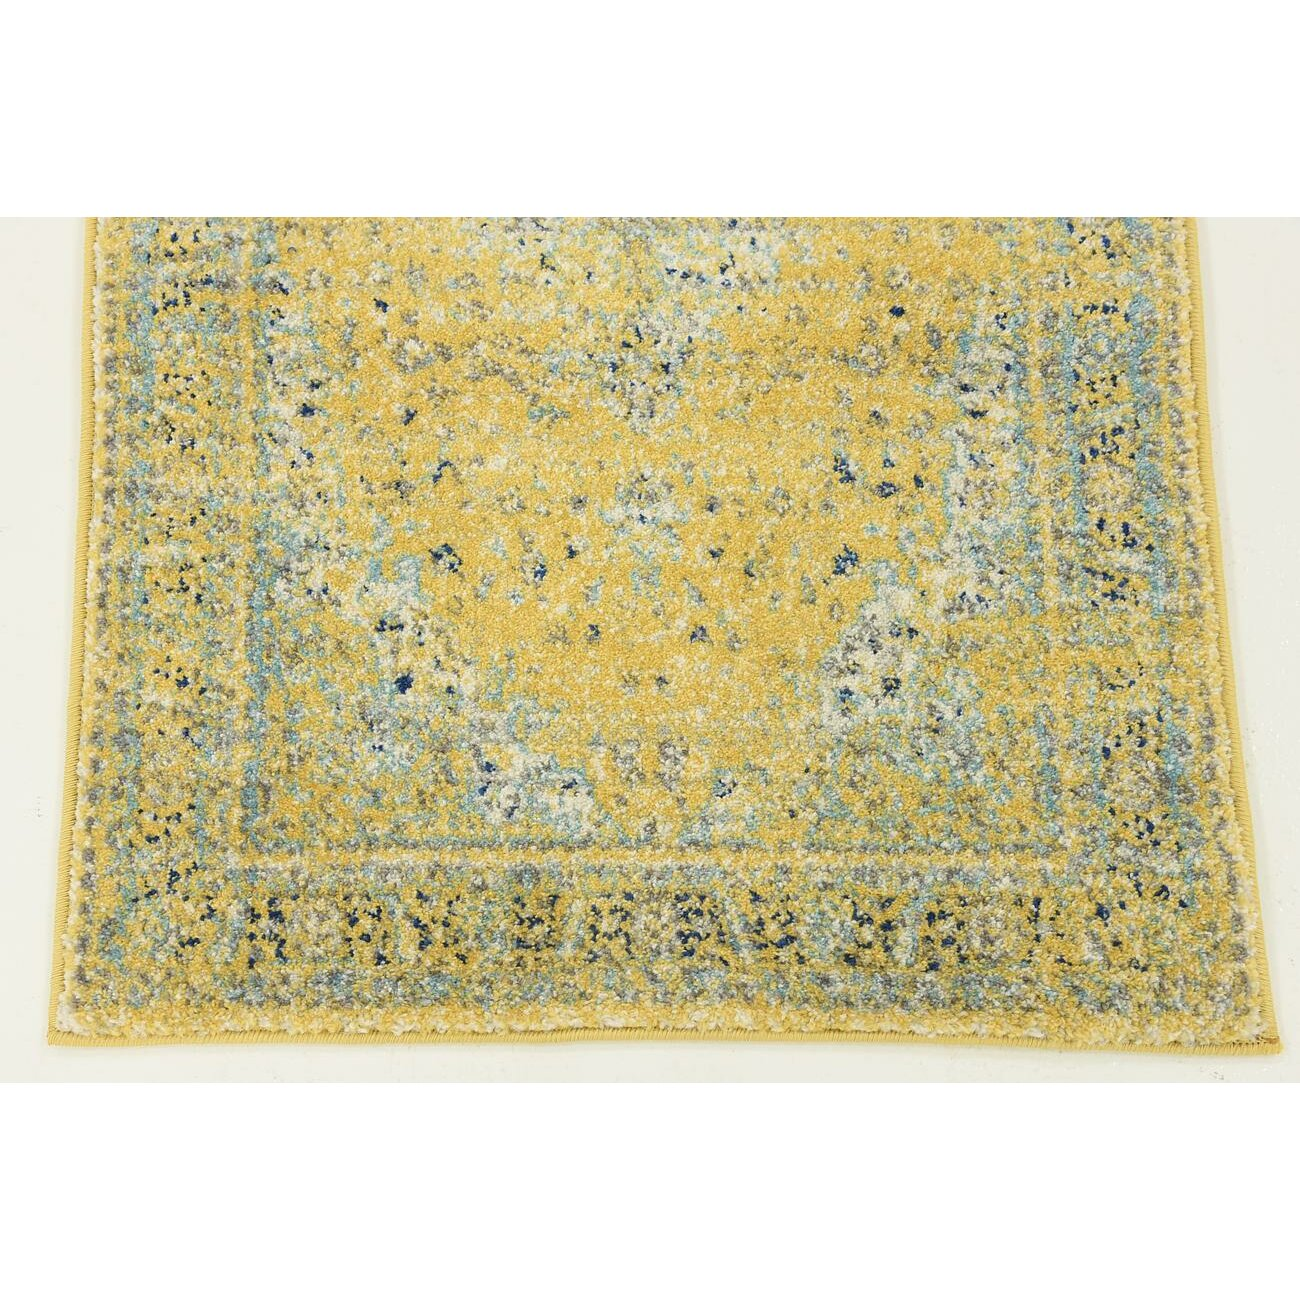 Yellow Outdoor Rug 8x10 8x10 Loloi Rug Indoor Outdoor In